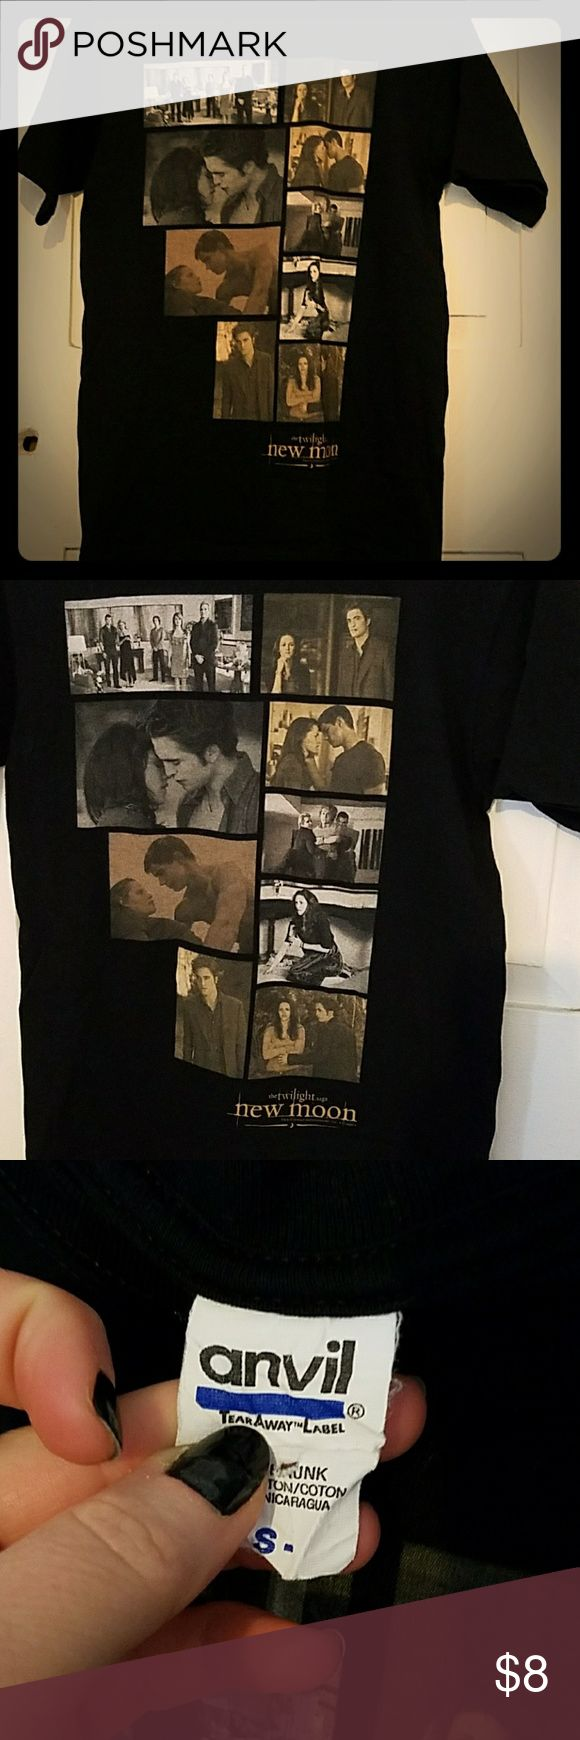 Twilight New Moon Photographs shirt Twilight New Moon Photographs shirt. Size Small purchased at Hot Topic.  Good condition. Hot Topic Tops Tees - Short Sleeve